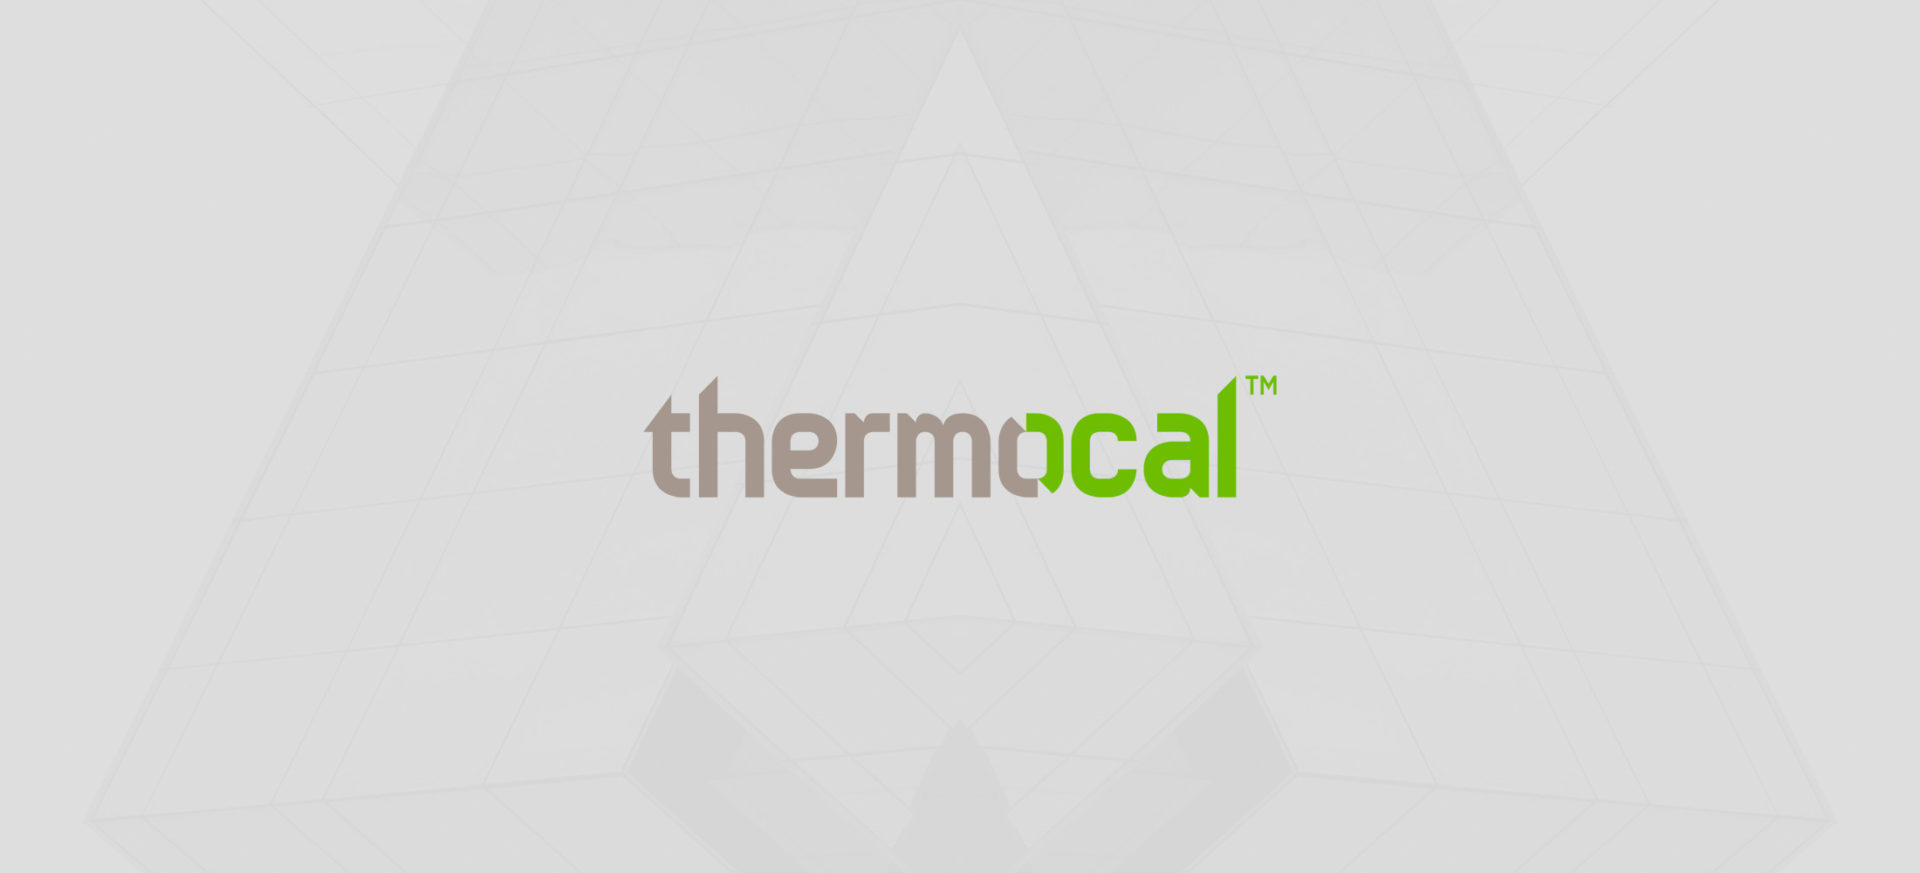 thermocal-header-3